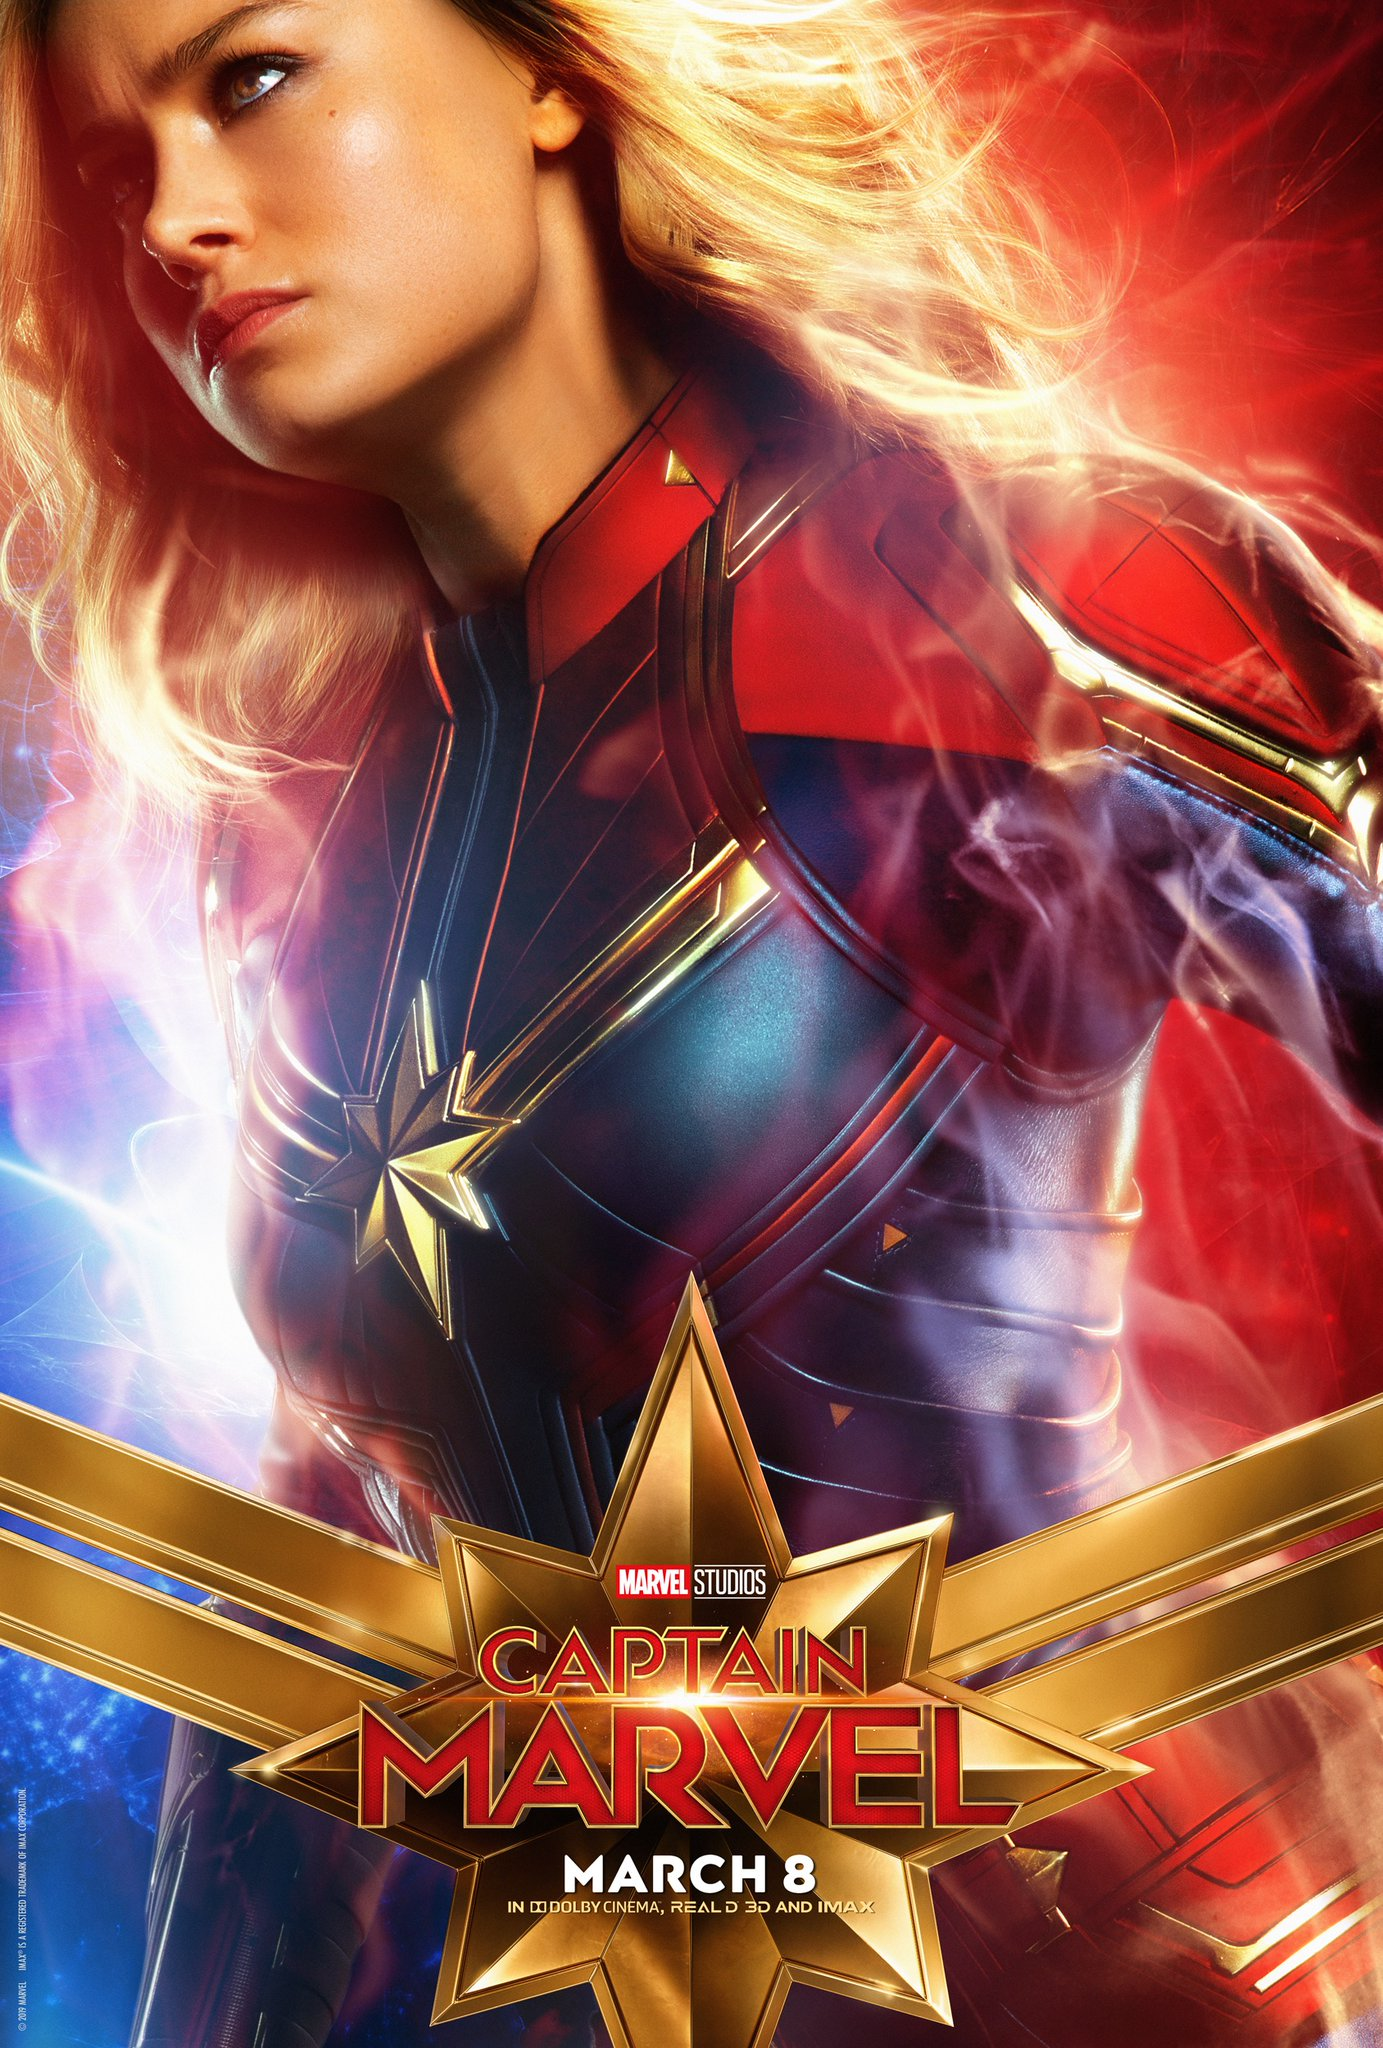 Captain Marvel Character Poster - Brie Larson Captain Marvel